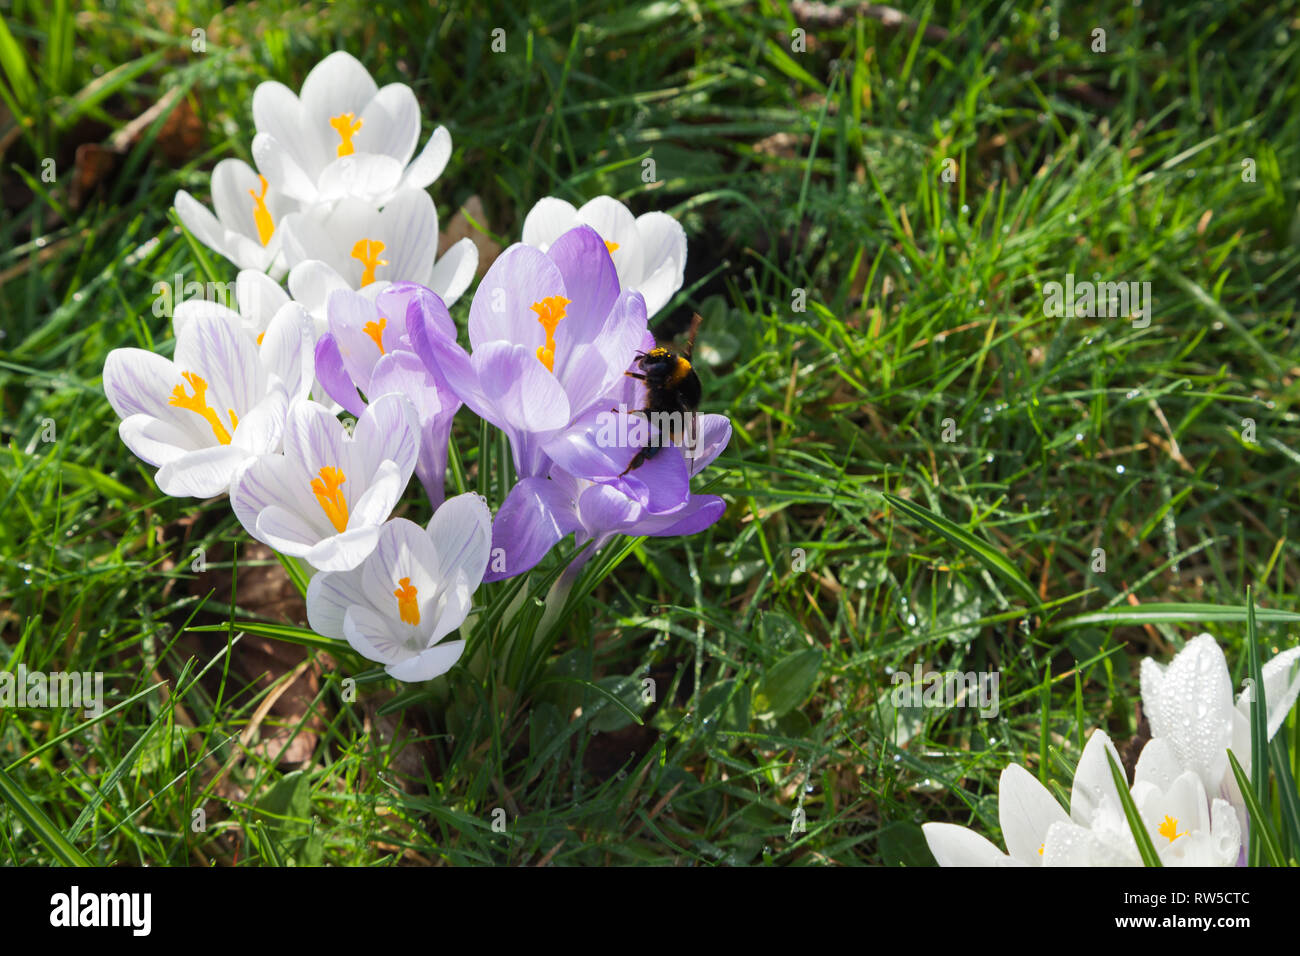 Spring flowering crocus growing through lawn with queen bumblebee - Stock Image